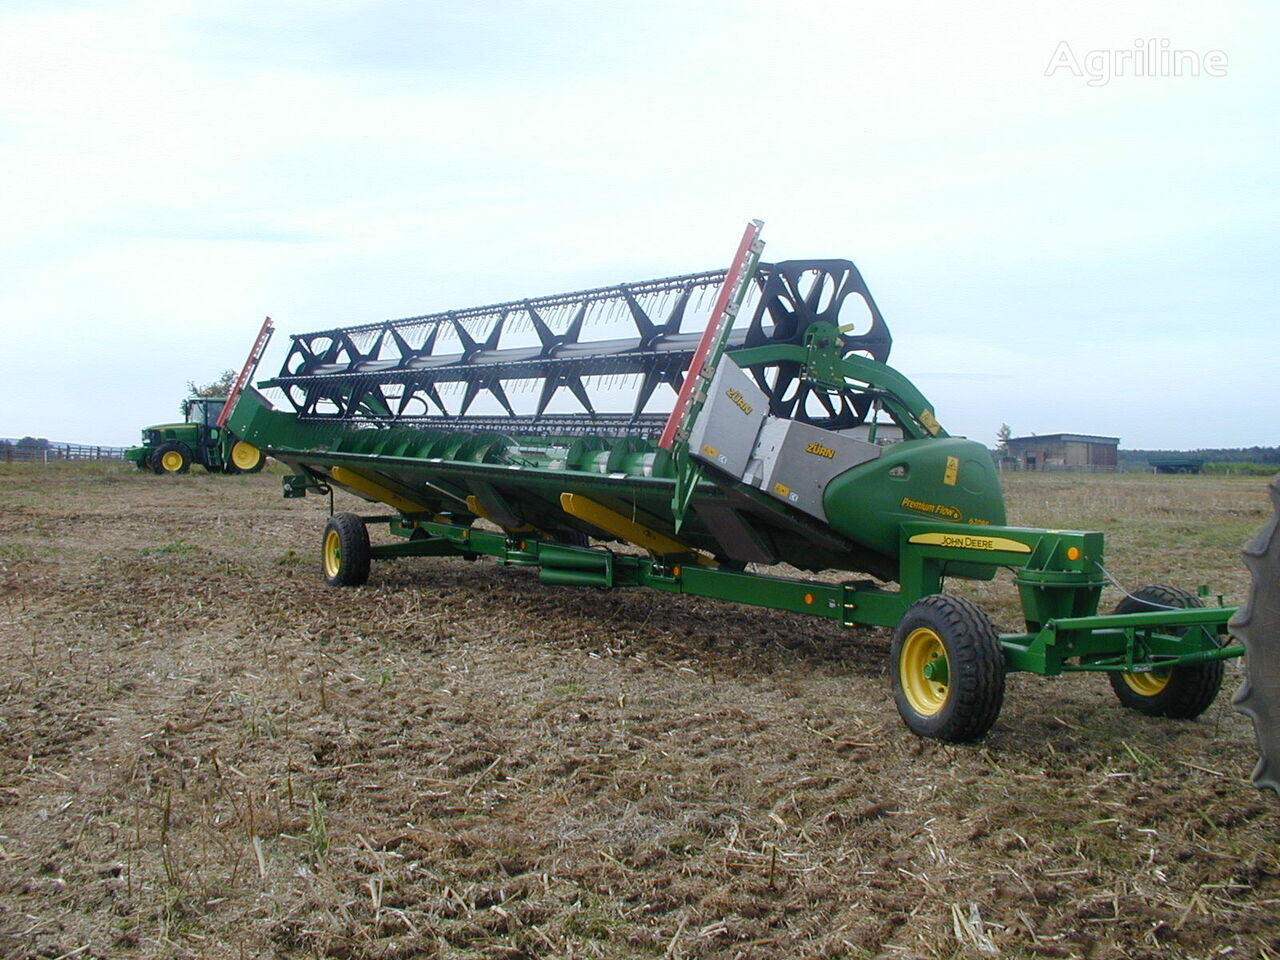 ZURN Premium Flow grain header